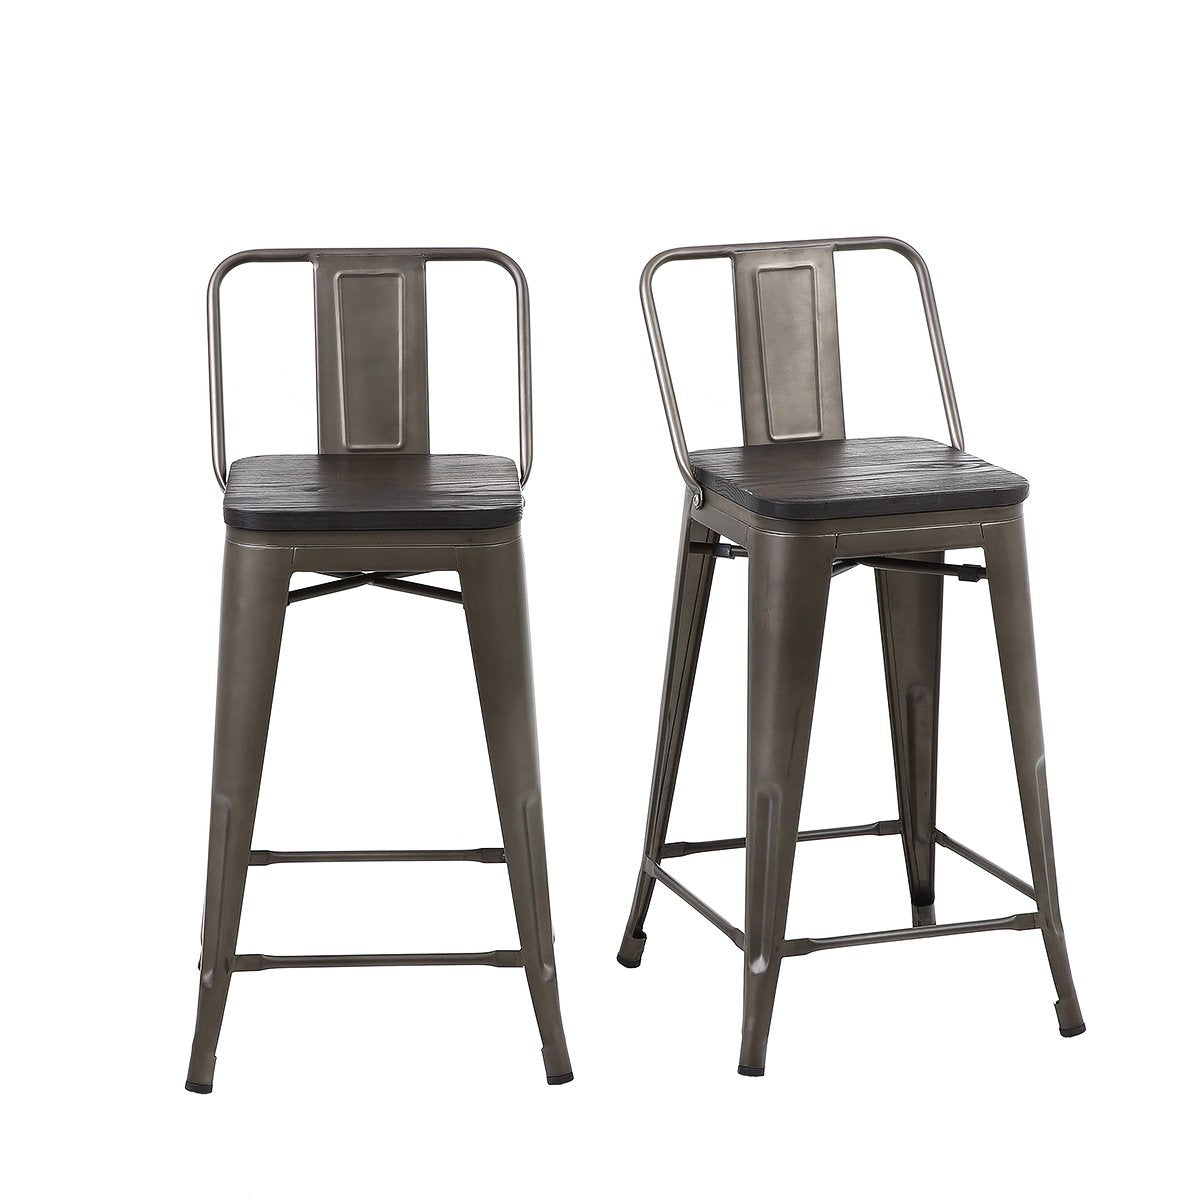 Tremendous 24 Inch Bronze Metal Counter Stools With Wooden Seat Medium Back Set Of 4 Forskolin Free Trial Chair Design Images Forskolin Free Trialorg